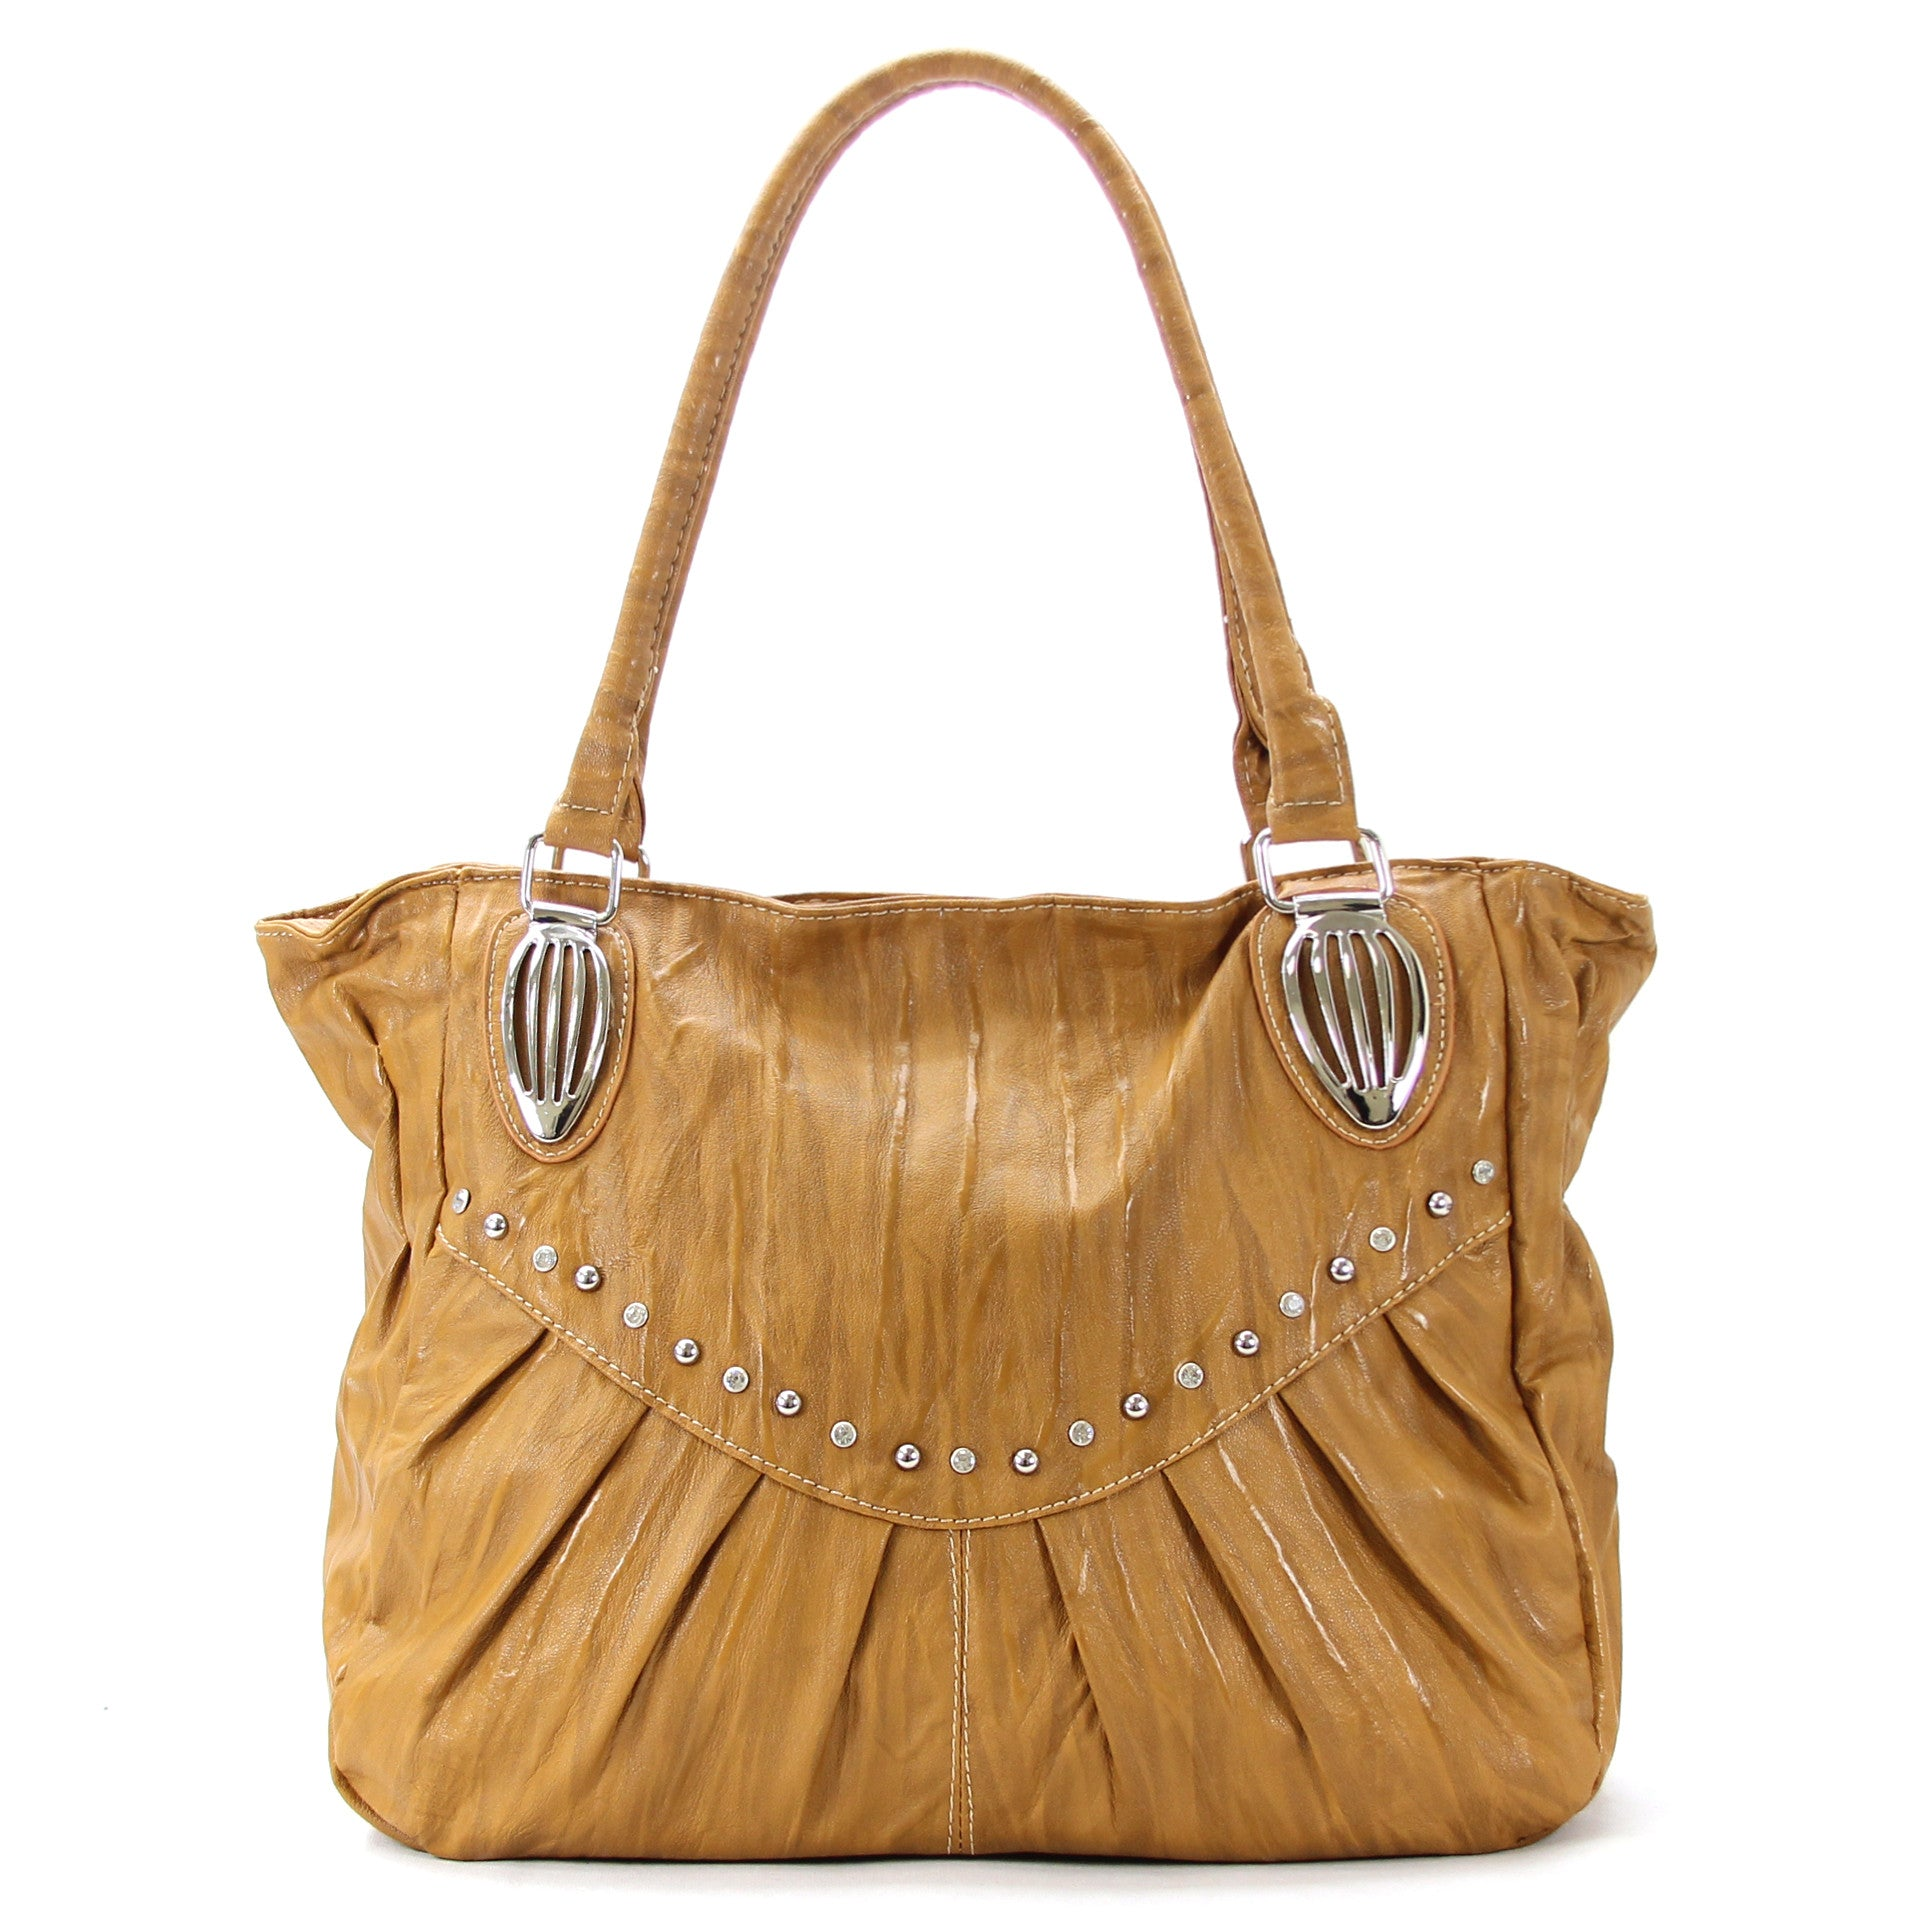 Everyday Universal Pleated Stud Purse Handbag Tote Bag - Khaki - Pop Fashion